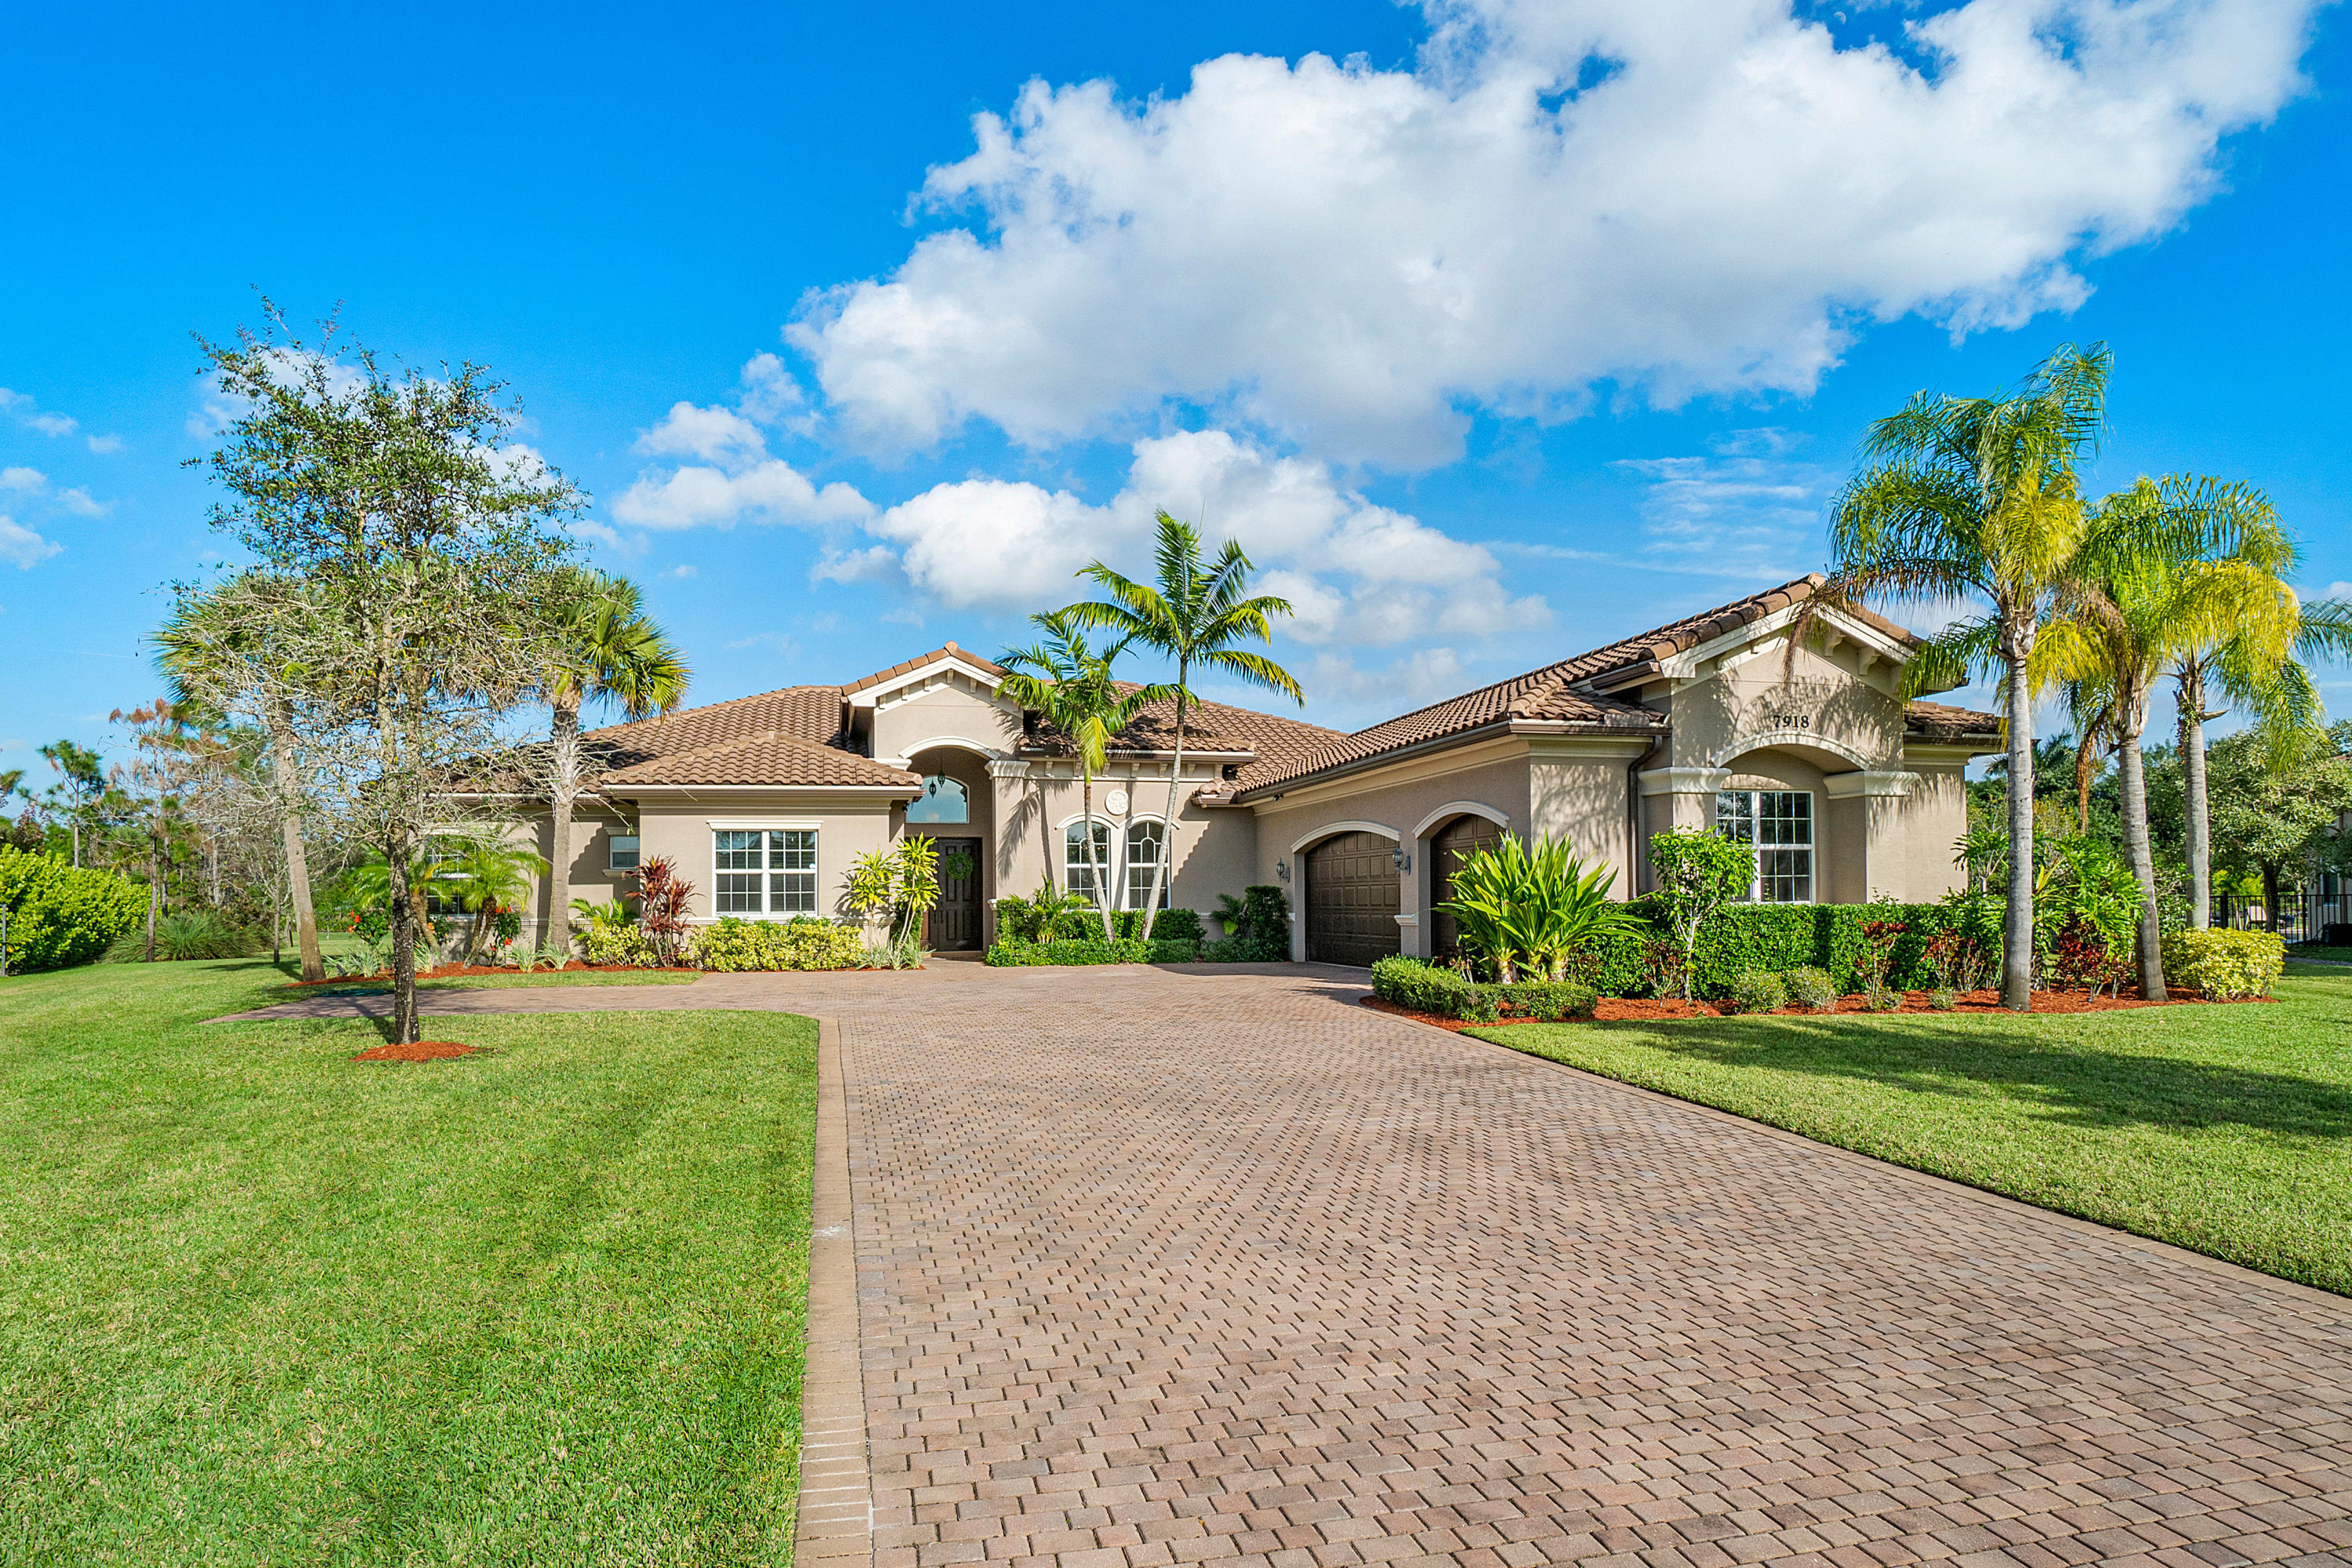 7918 Arbor Crest Way, Palm Beach Gardens, Florida 33412, 4 Bedrooms Bedrooms, ,4.1 BathroomsBathrooms,Single Family,For Sale,The Preserve,Arbor Crest,RX-10590936